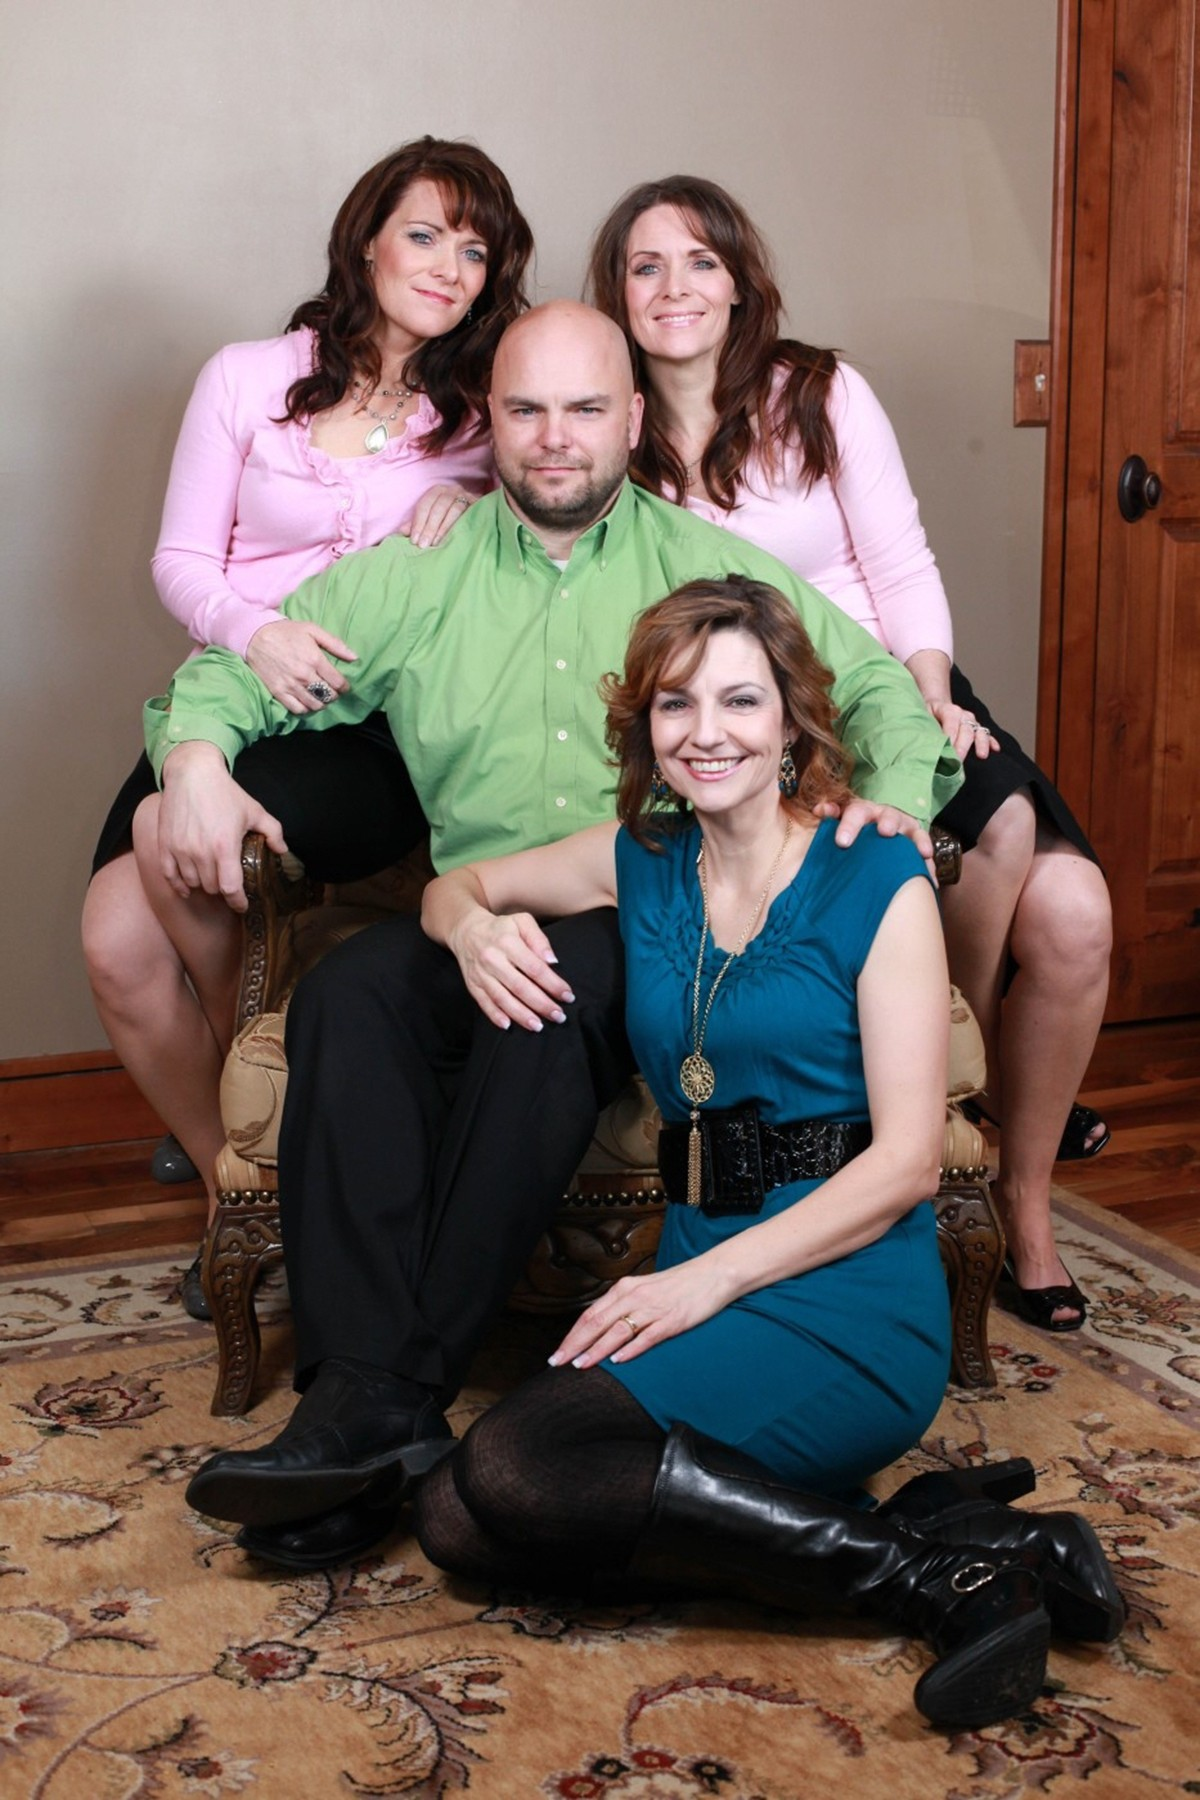 00-mormon-with-three-wives-05-12.jpg